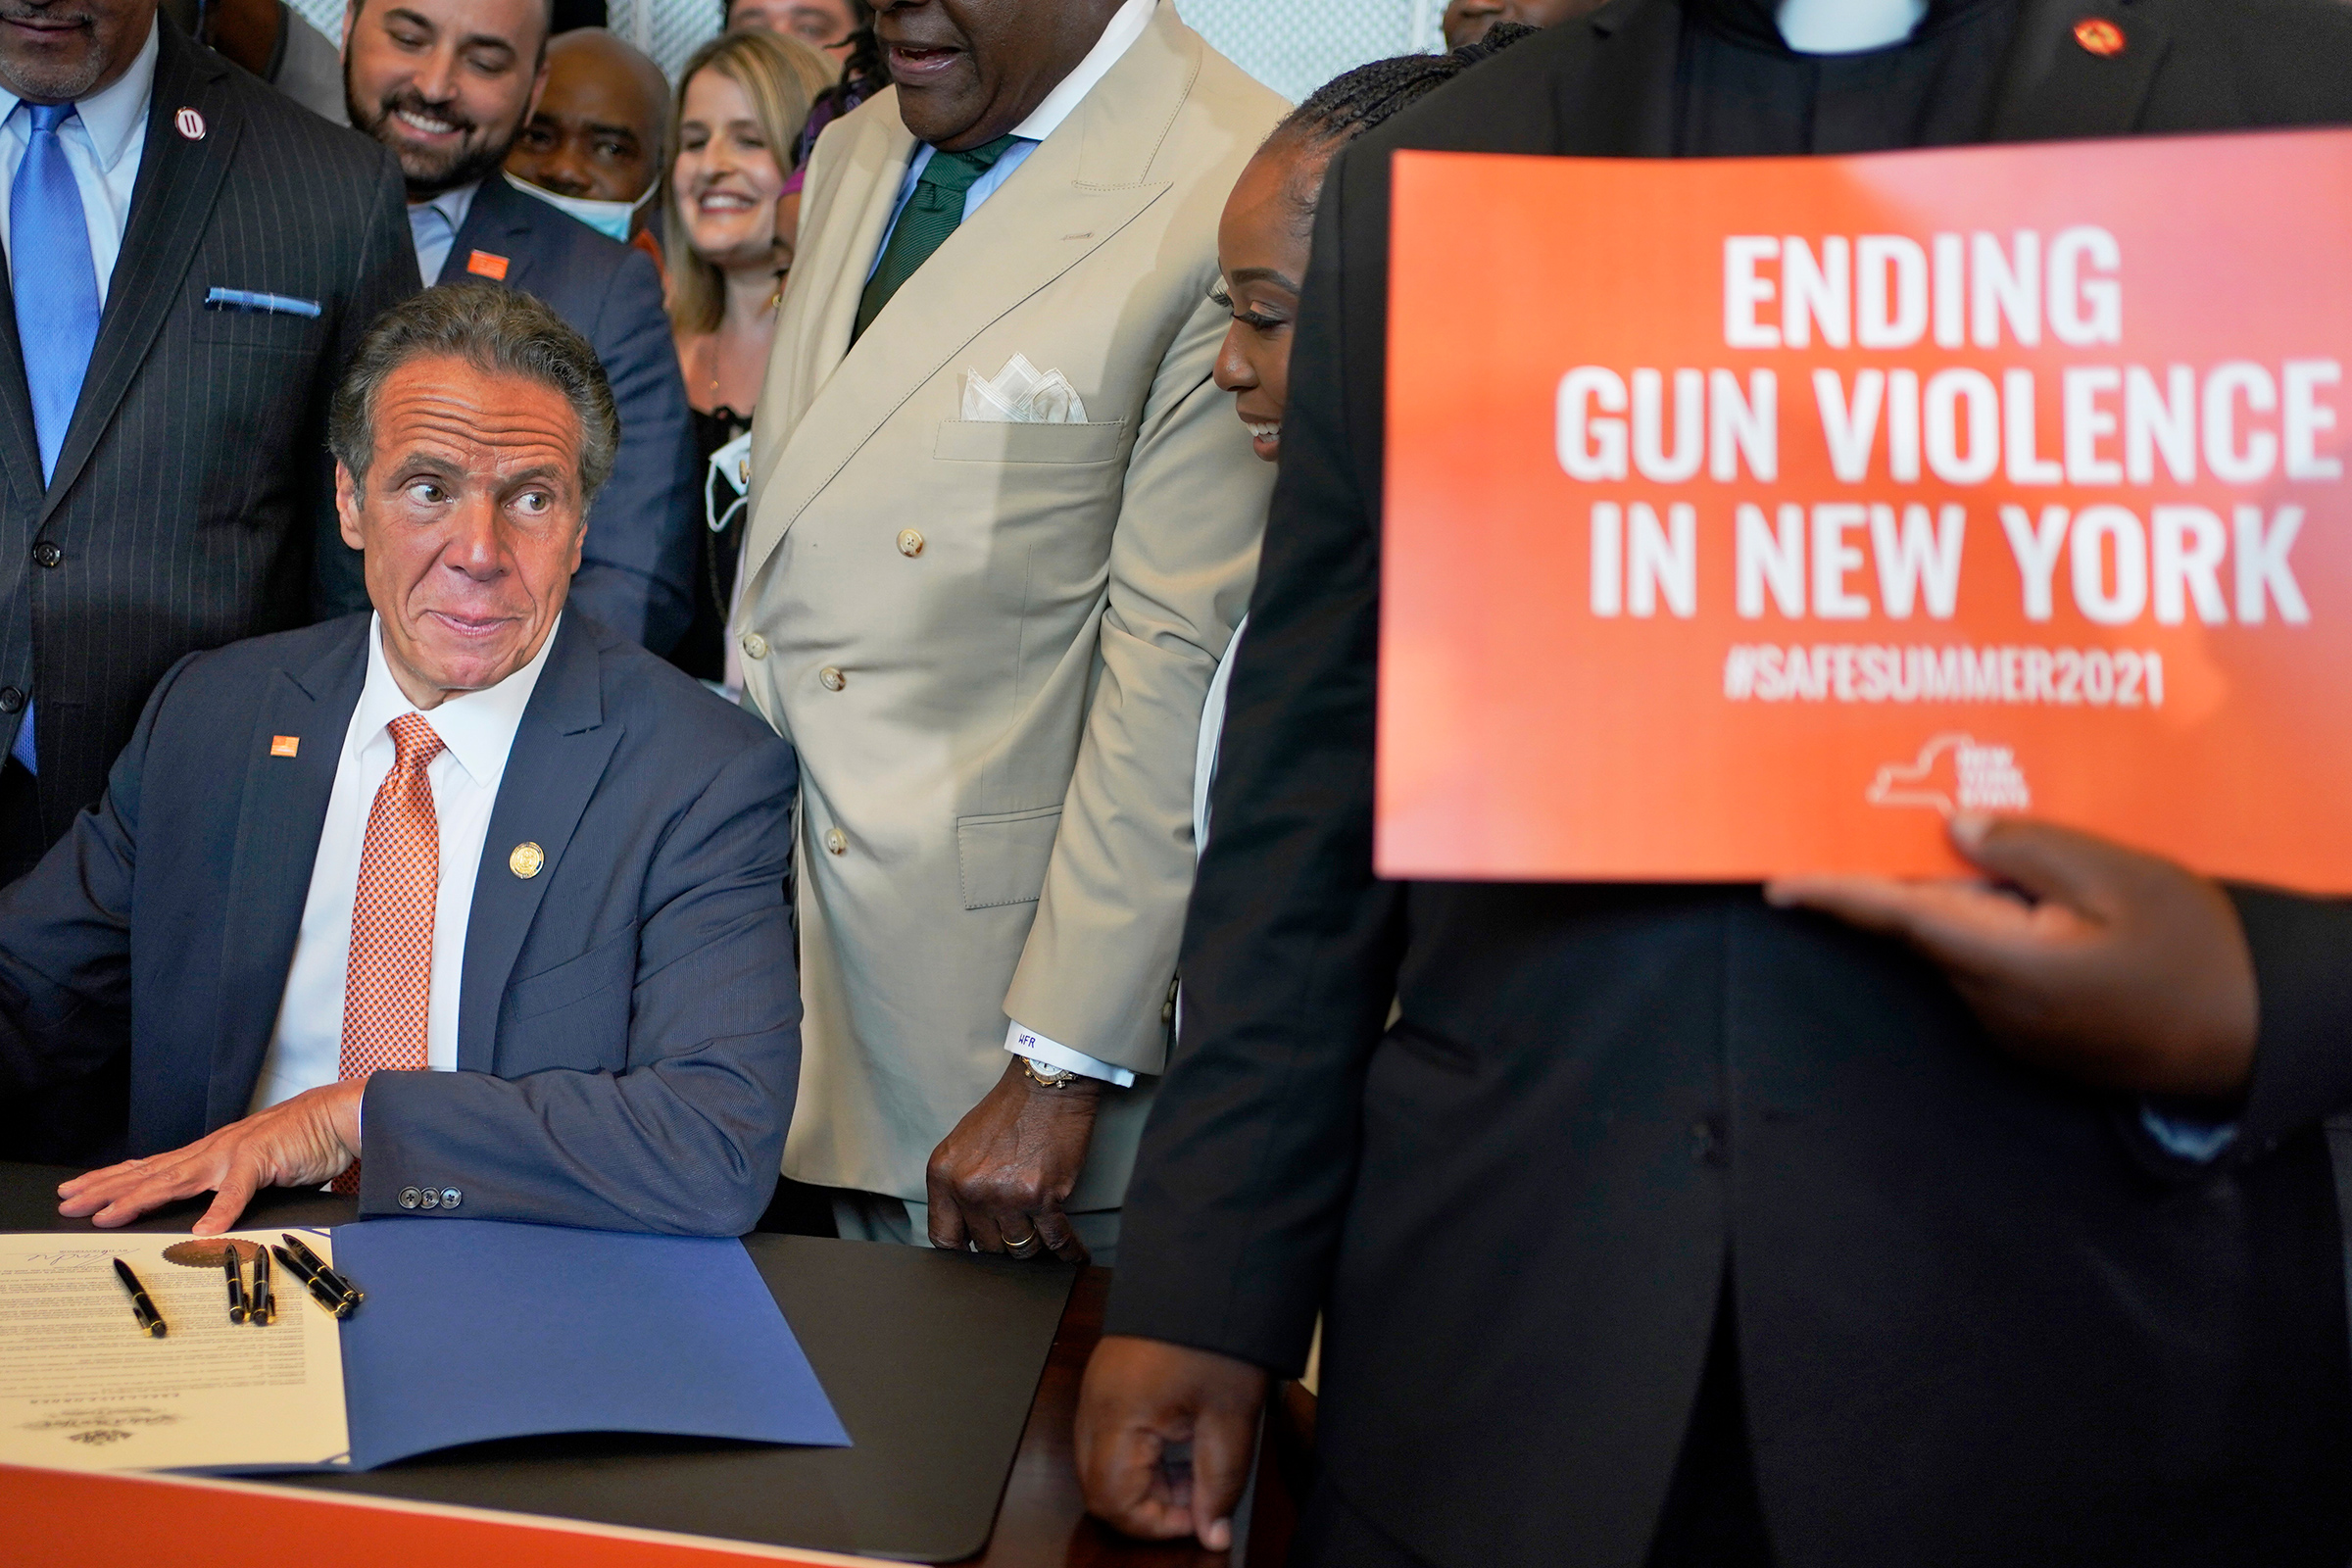 Surrounded by supporters and advocates, New York Governor Andrew Cuomo signs legislation on gun control in New York on July 6. Cuomo signed two pieces of legislation to combat gun violence in New York state.